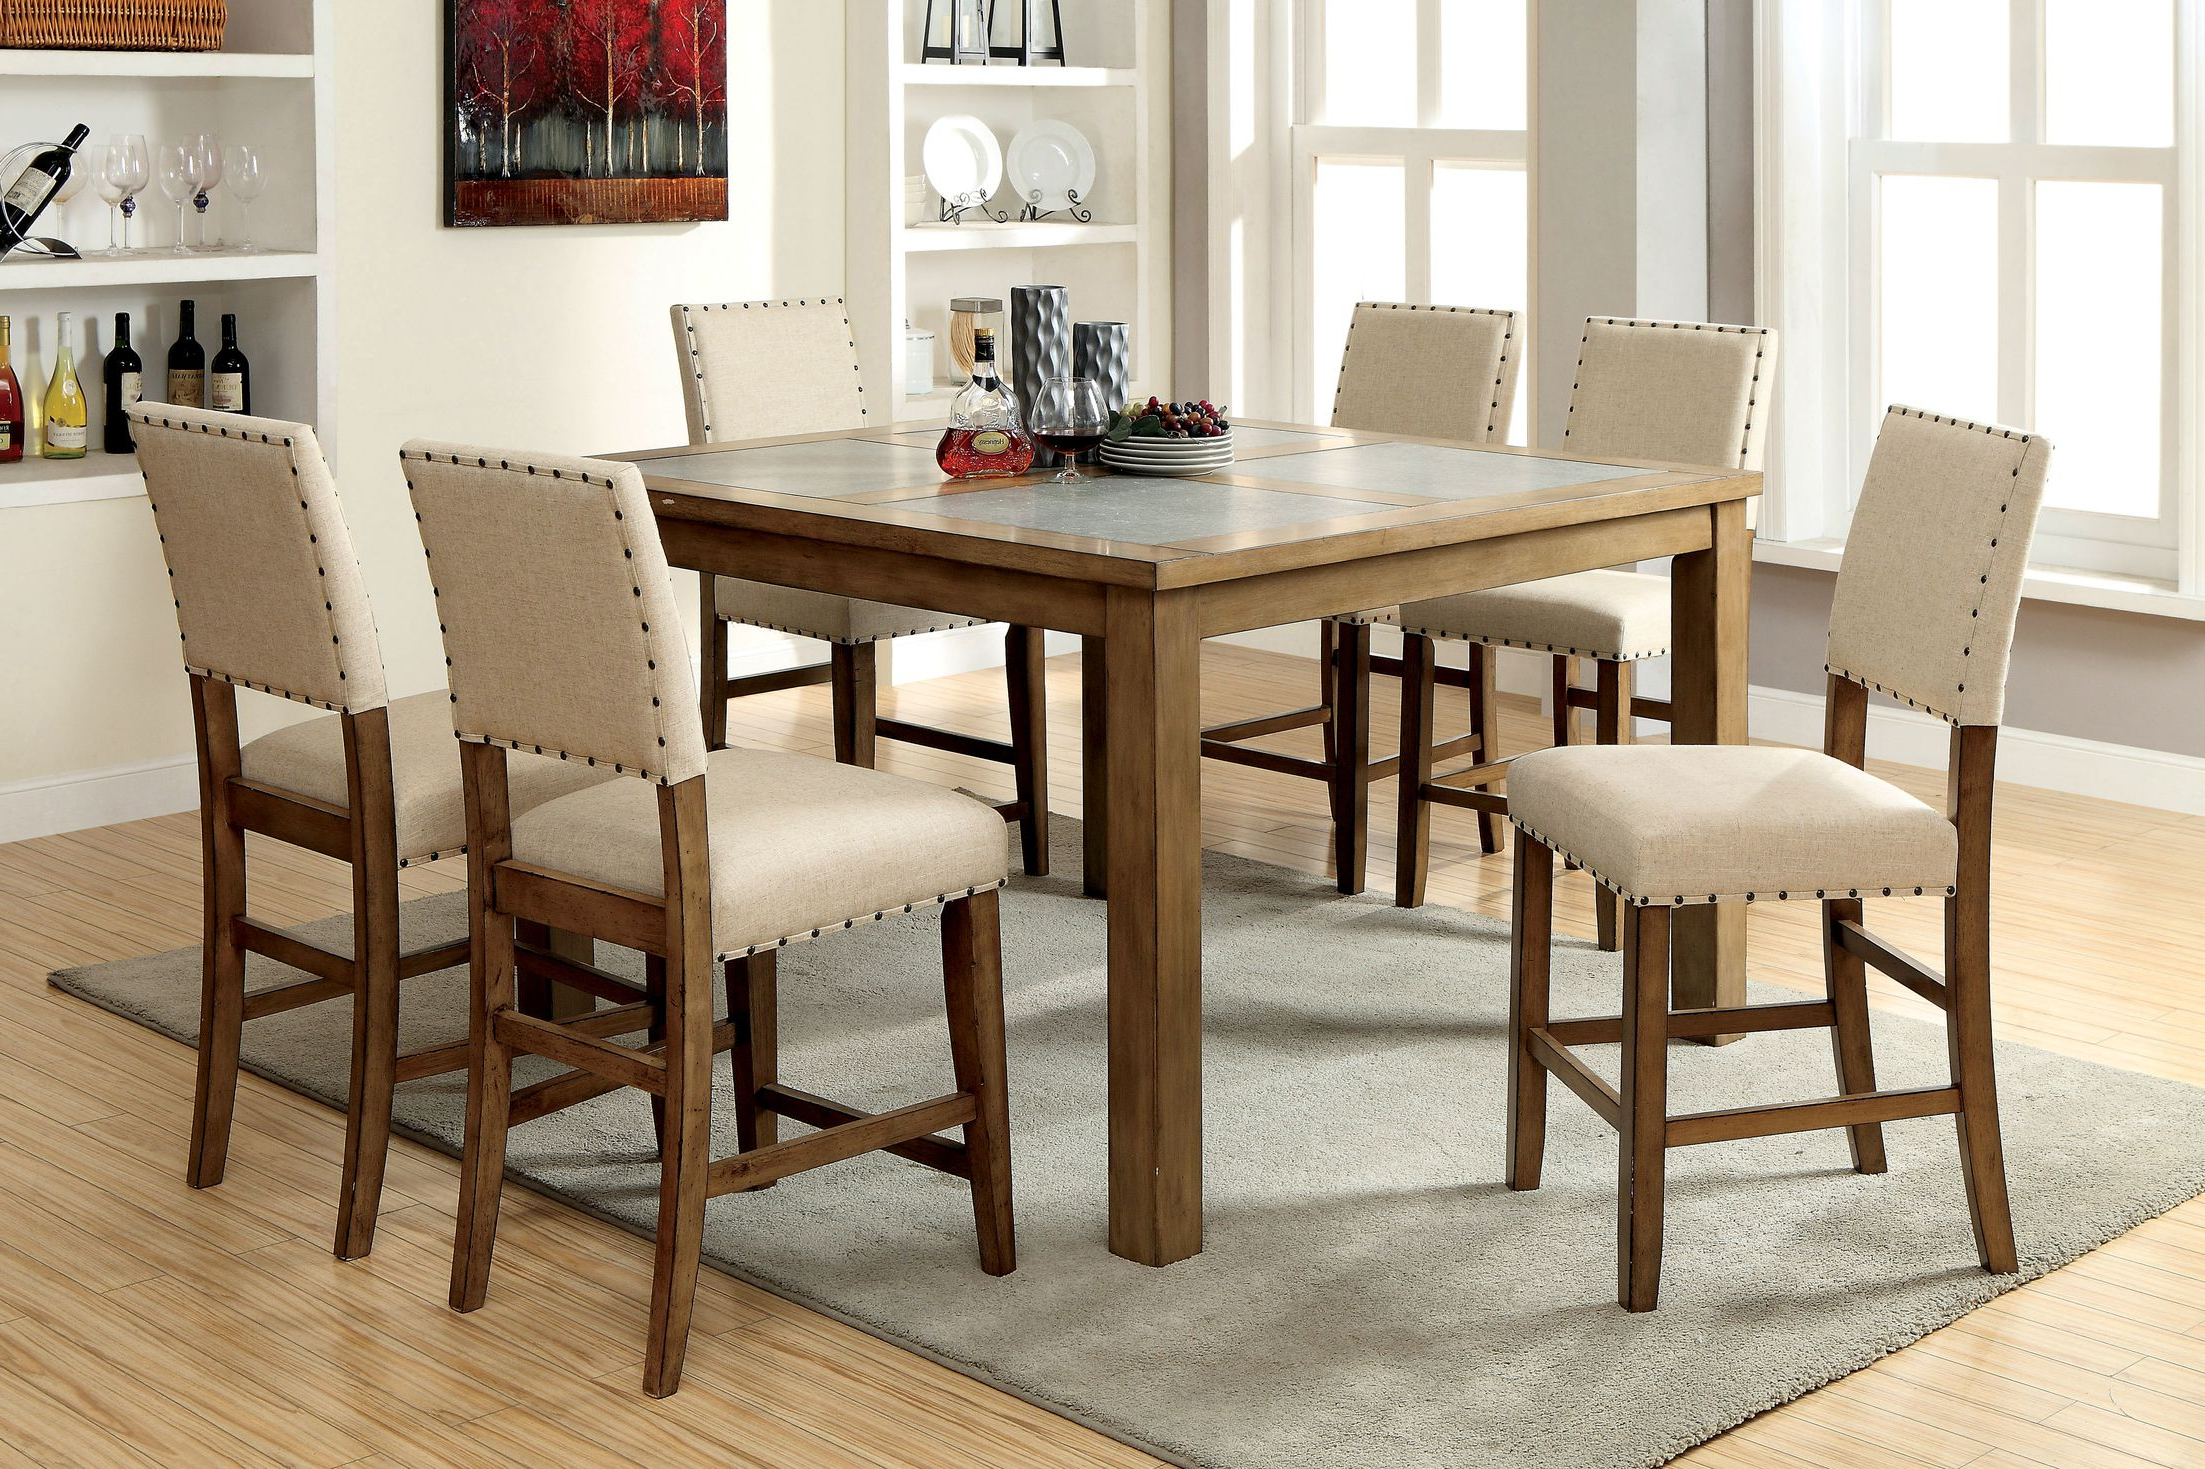 Dining Tables Crafton Counter Height Pub Dining Table March 2019 Throughout Well Known Castellanos Modern 5 Piece Counter Height Dining Sets (Gallery 12 of 25)